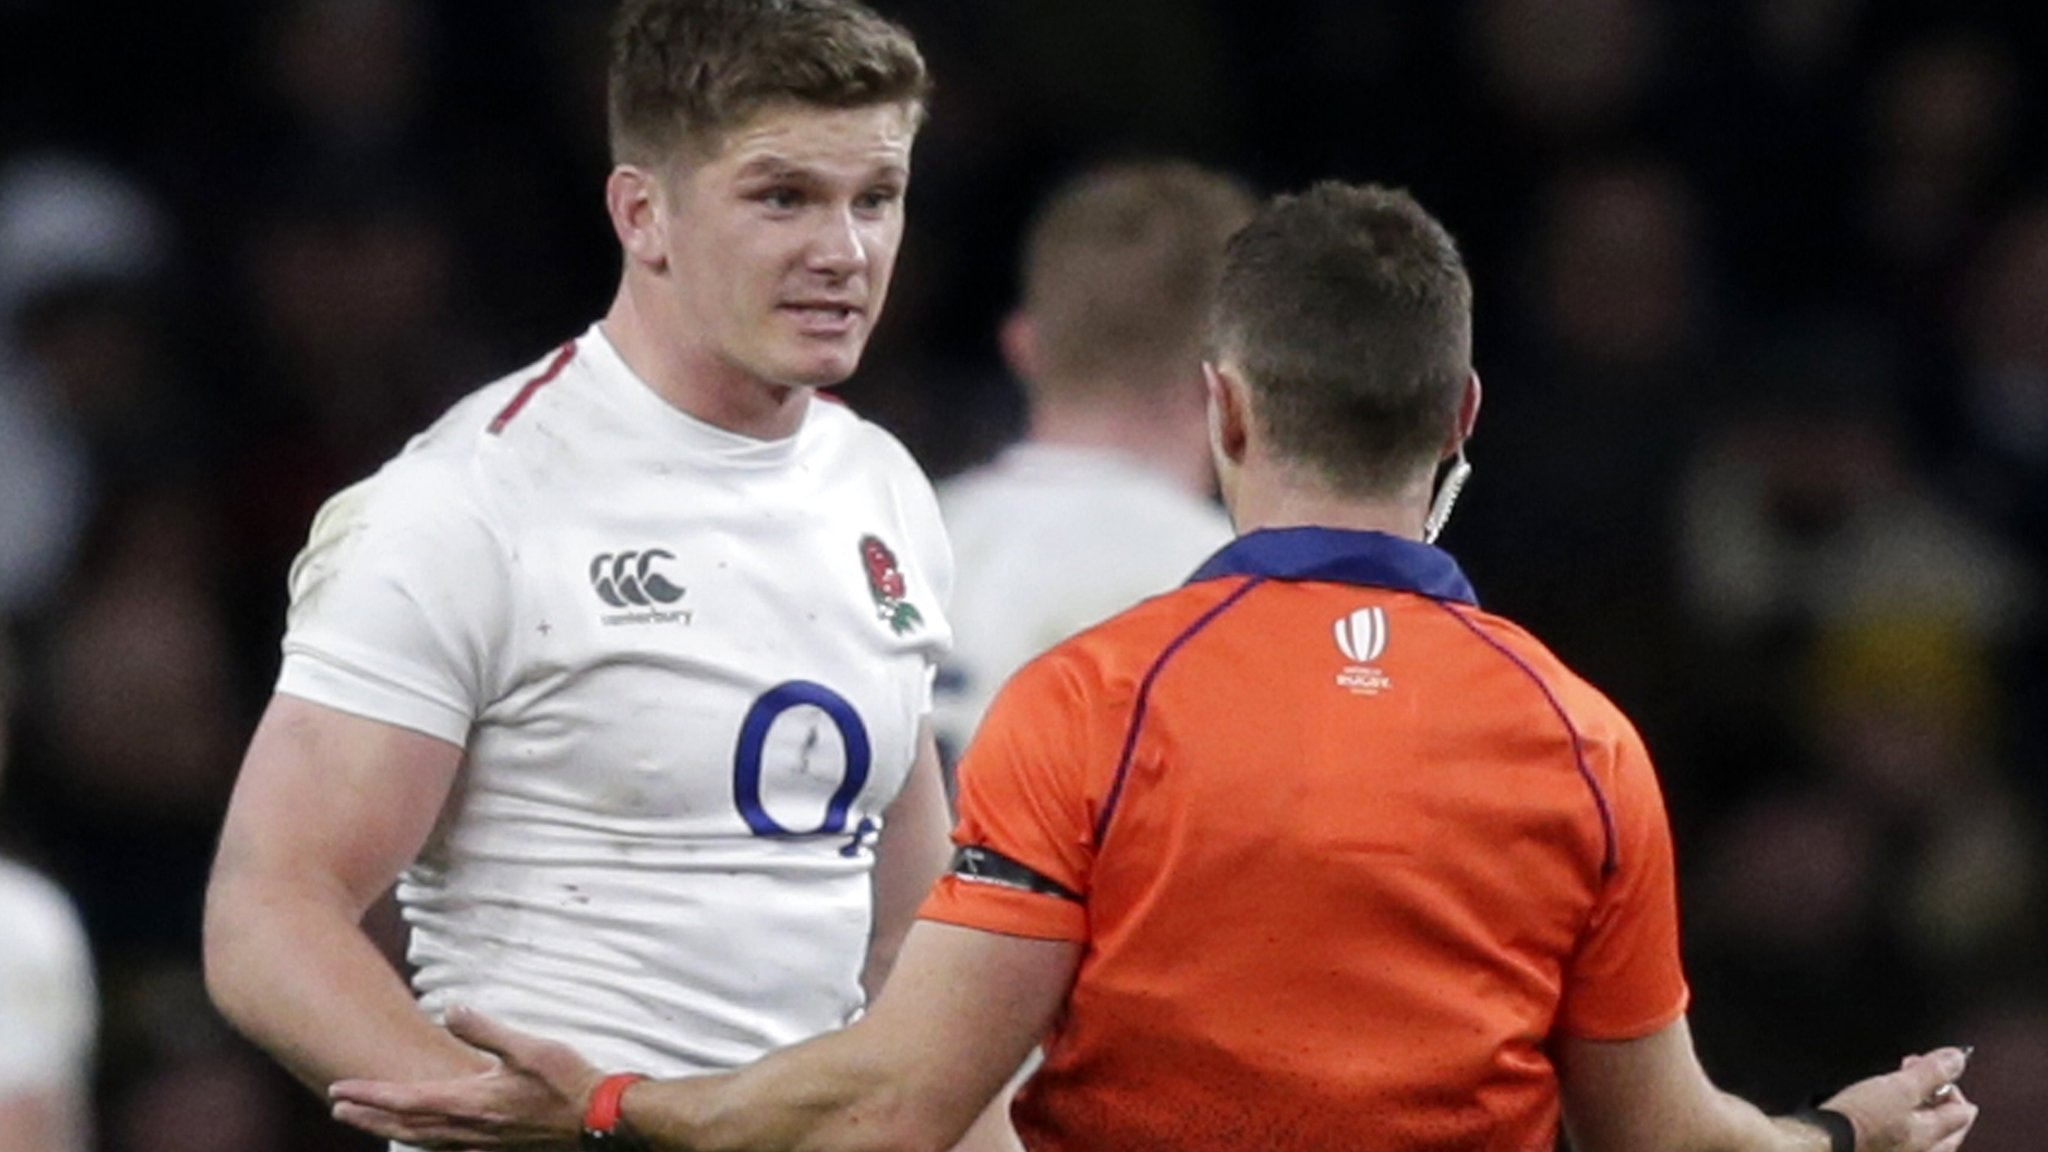 'Farrell's captaincy, rollercoaster emotions & second-half frailties - England v Scotland analysis